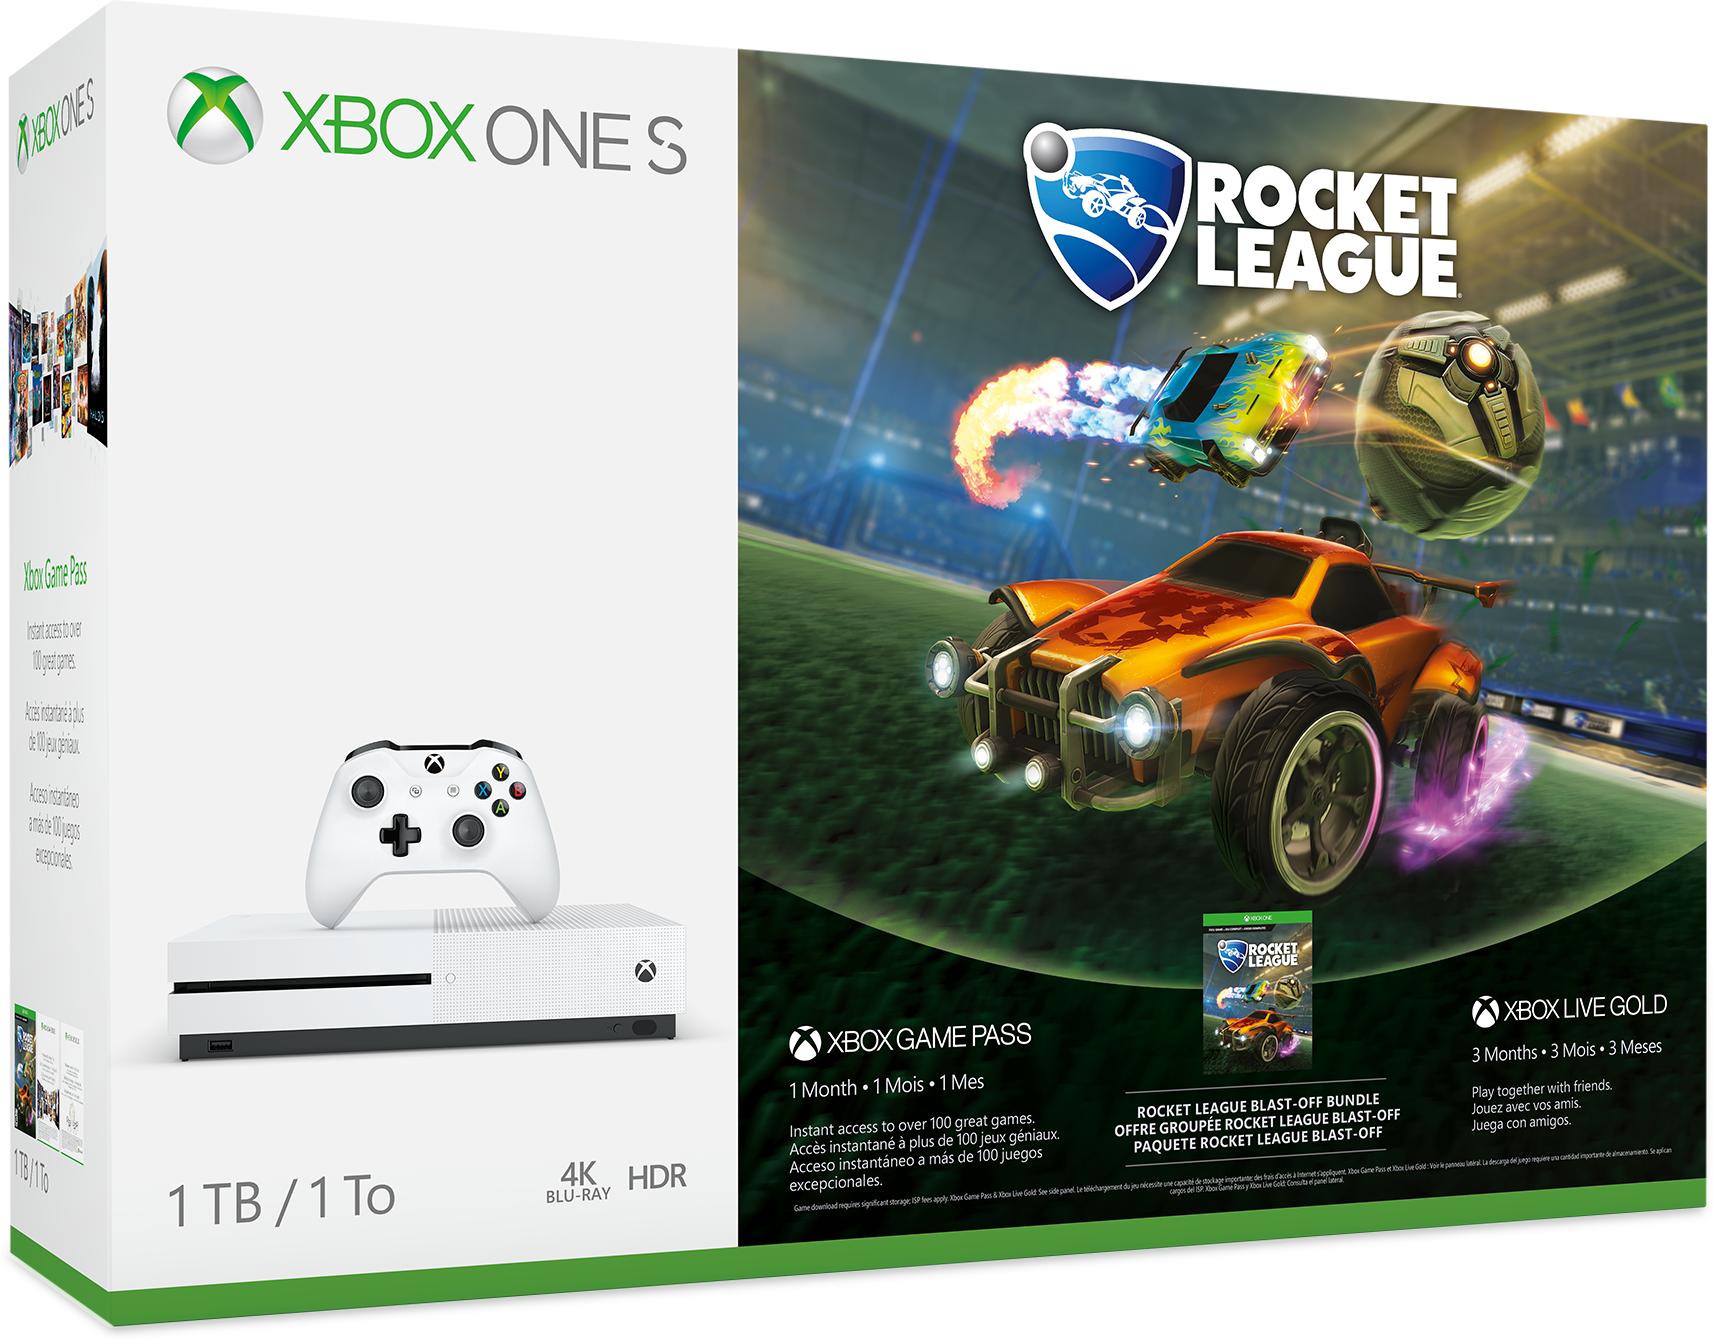 Xbox One S - Rocket League